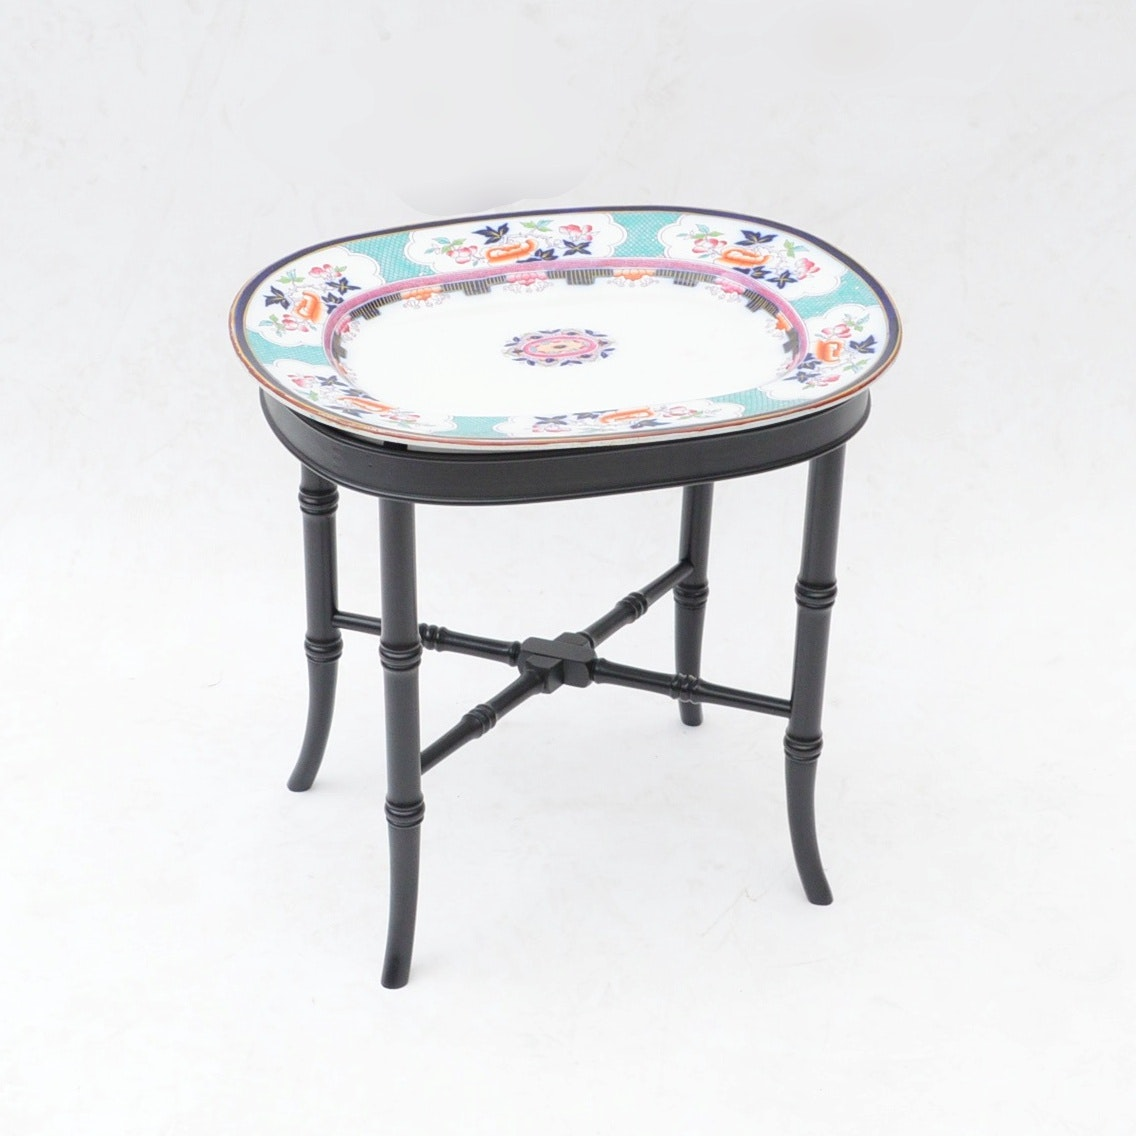 Antique Porcelain Platter on Later, Faux-Bamboo Stand